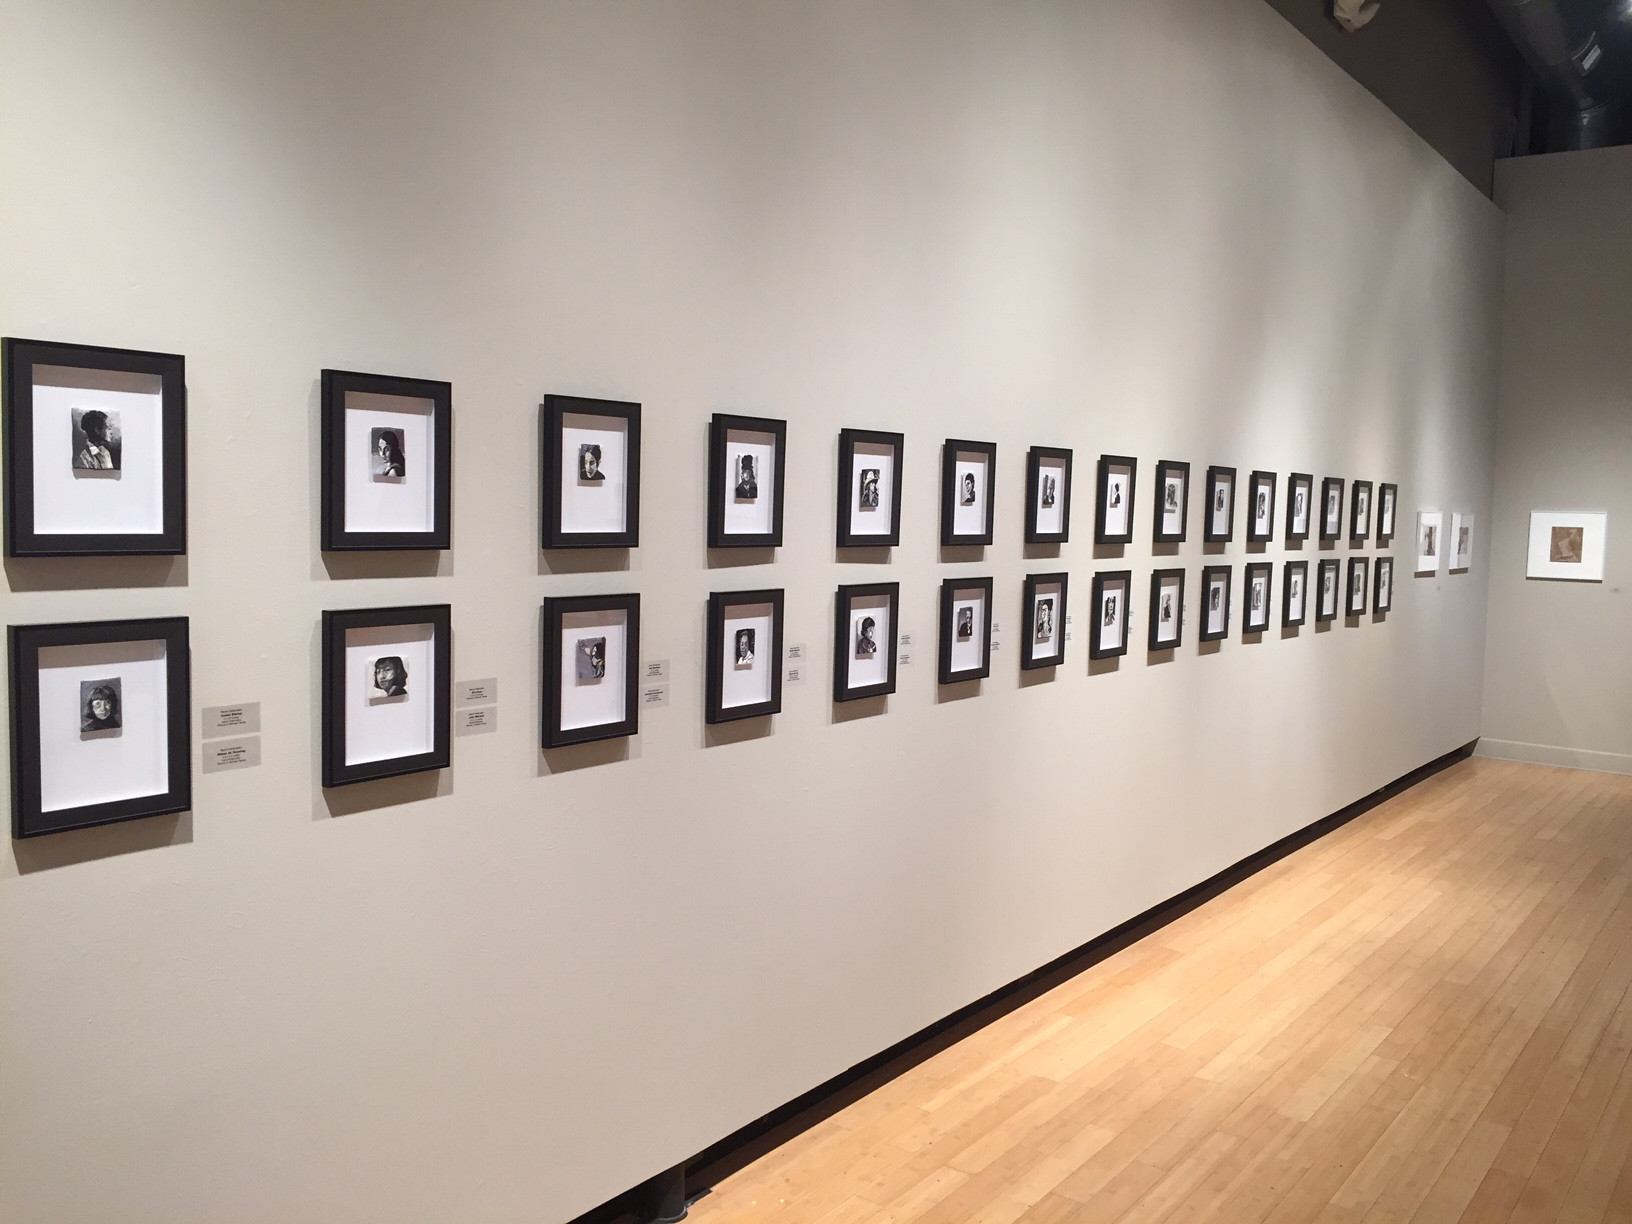 syracuse hardwood floor gallery of current past exhibition images ut downtown gallery with 2016 exhibitions